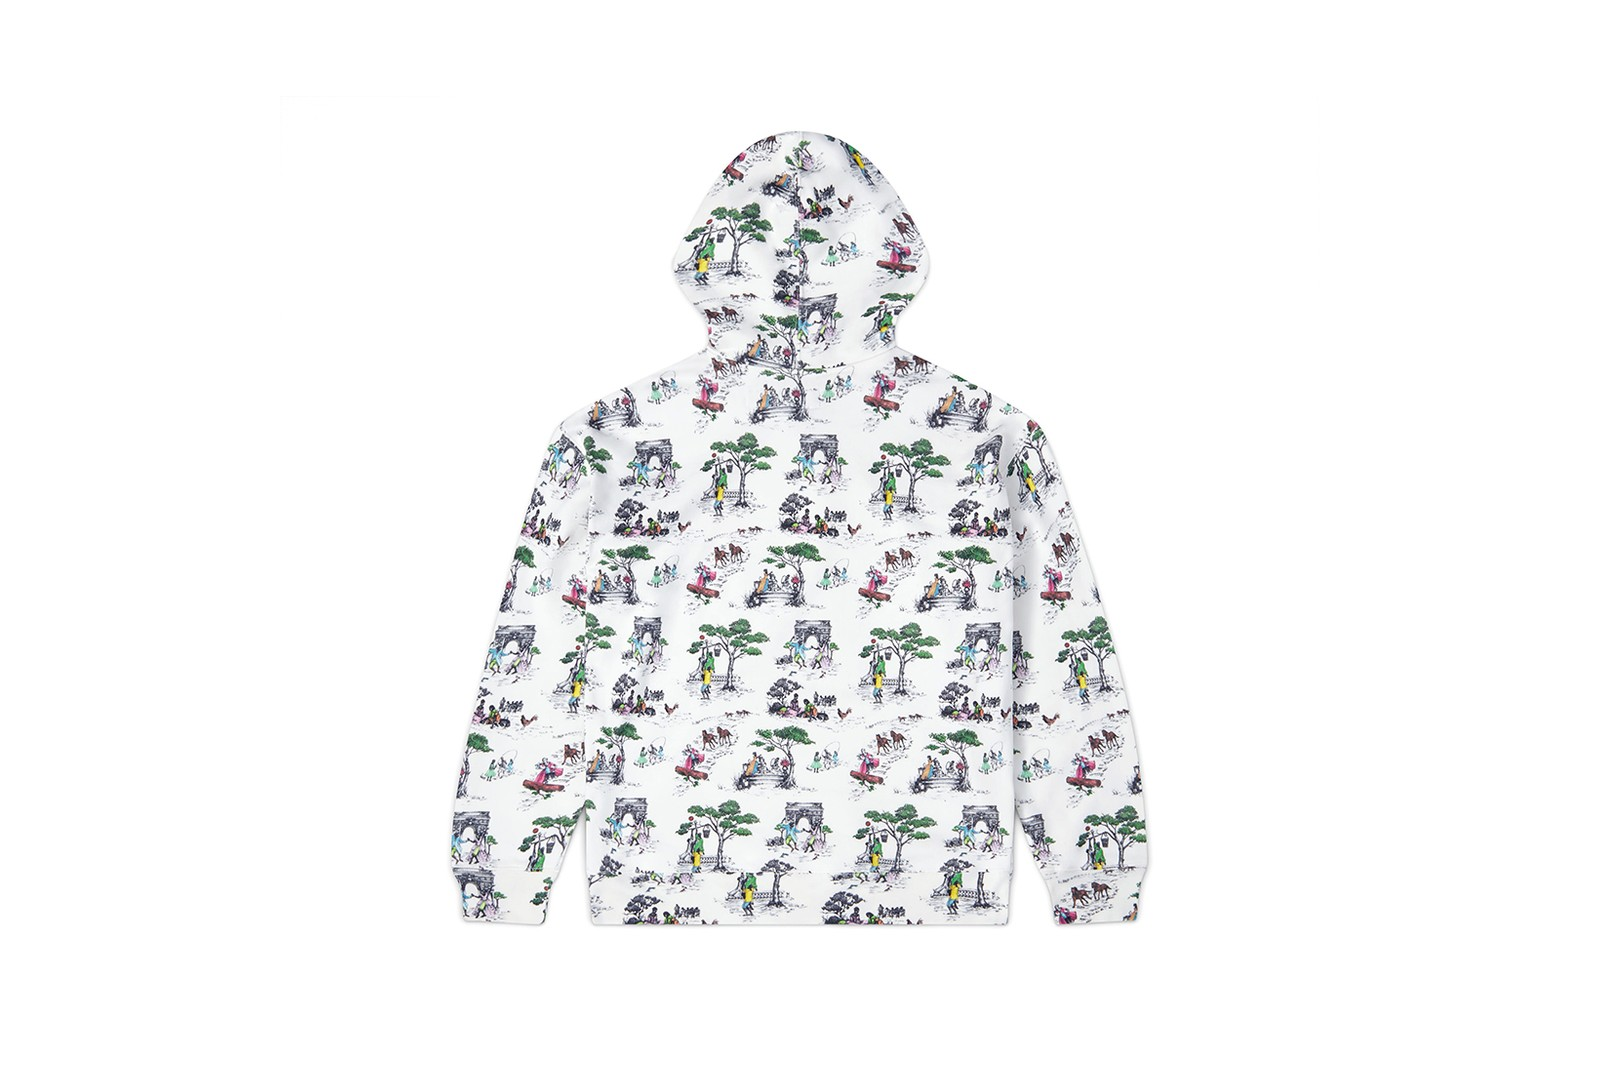 converse union sheila bridges collaboration chuck taylor all star hoodie bucket hat